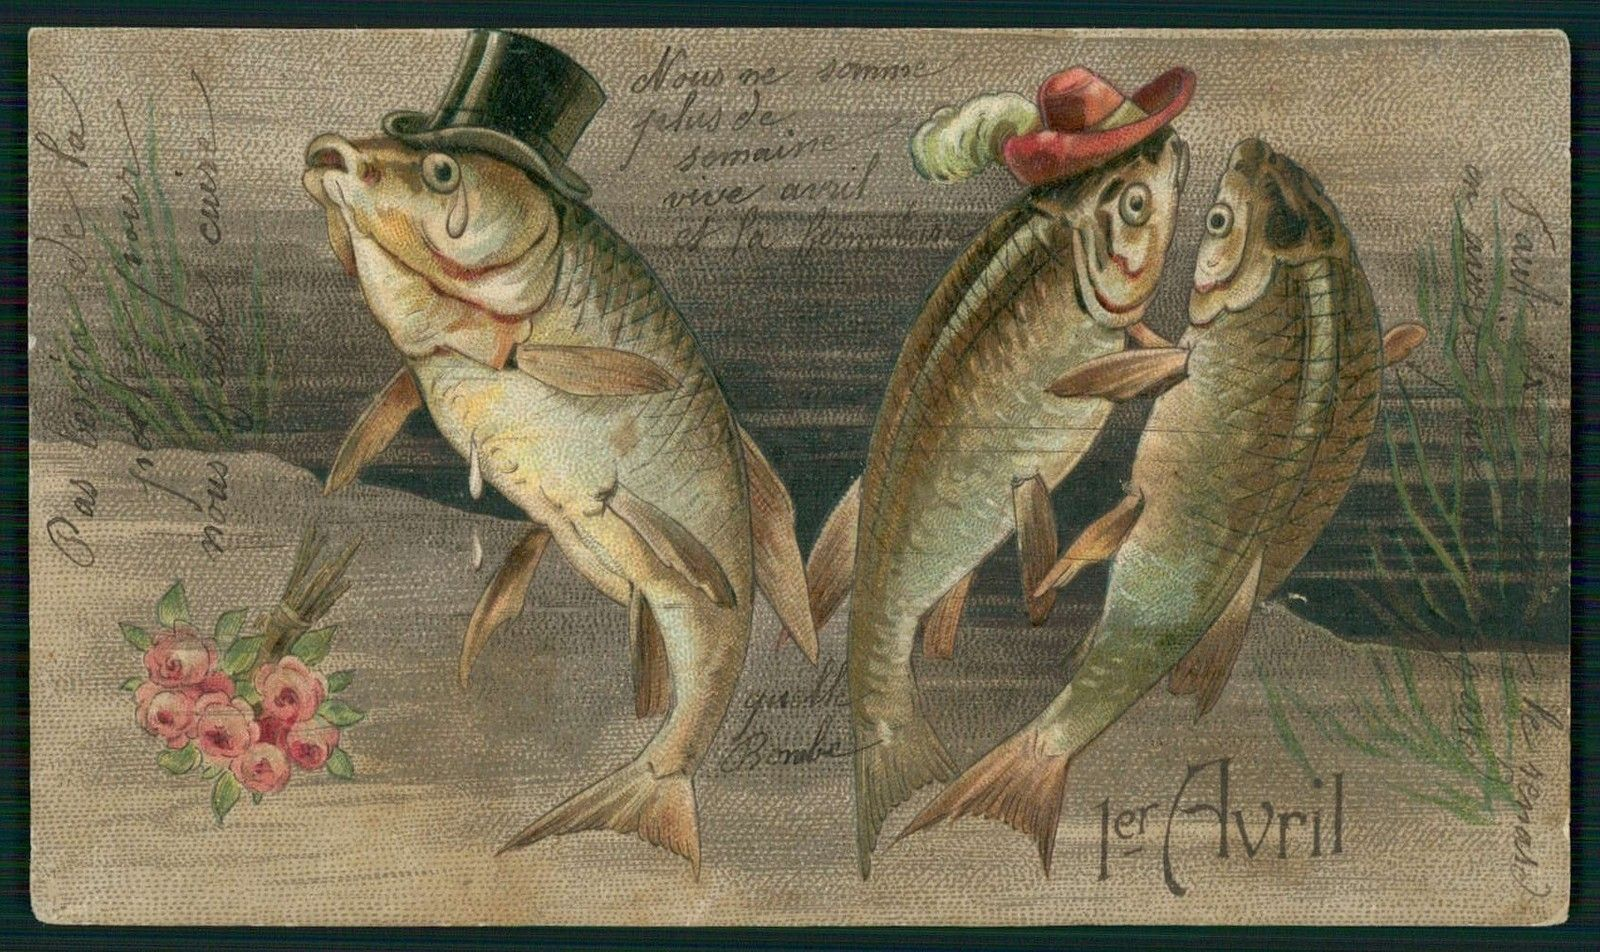 Art Dressed April Fool Day Lucky Fish Flirt Fantasy Original Old 1910s Postcard…